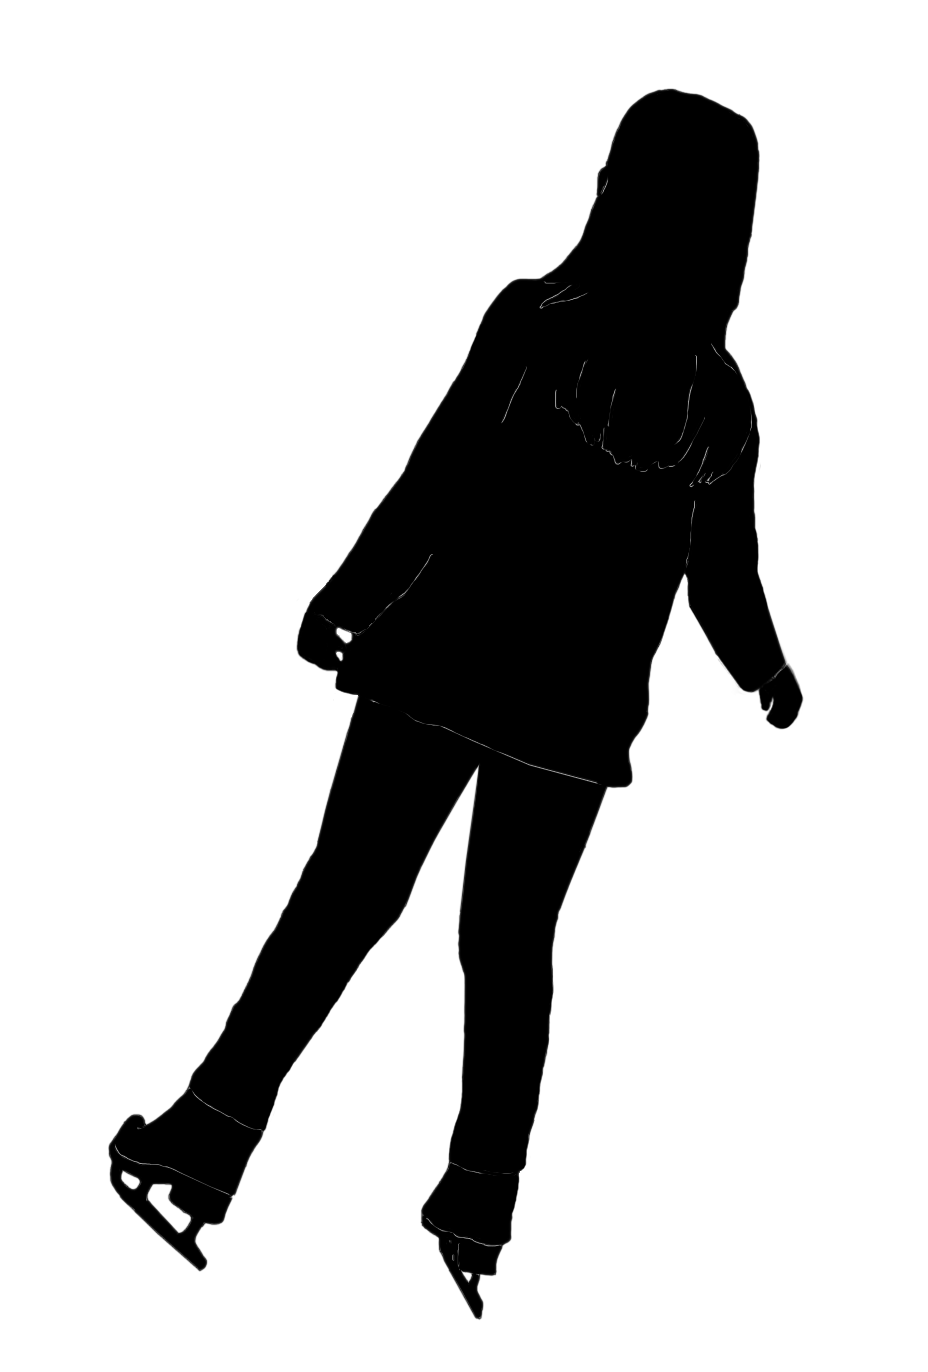 figure skater silhouette stock pictures silhouettes of people skating figure skater silhouette